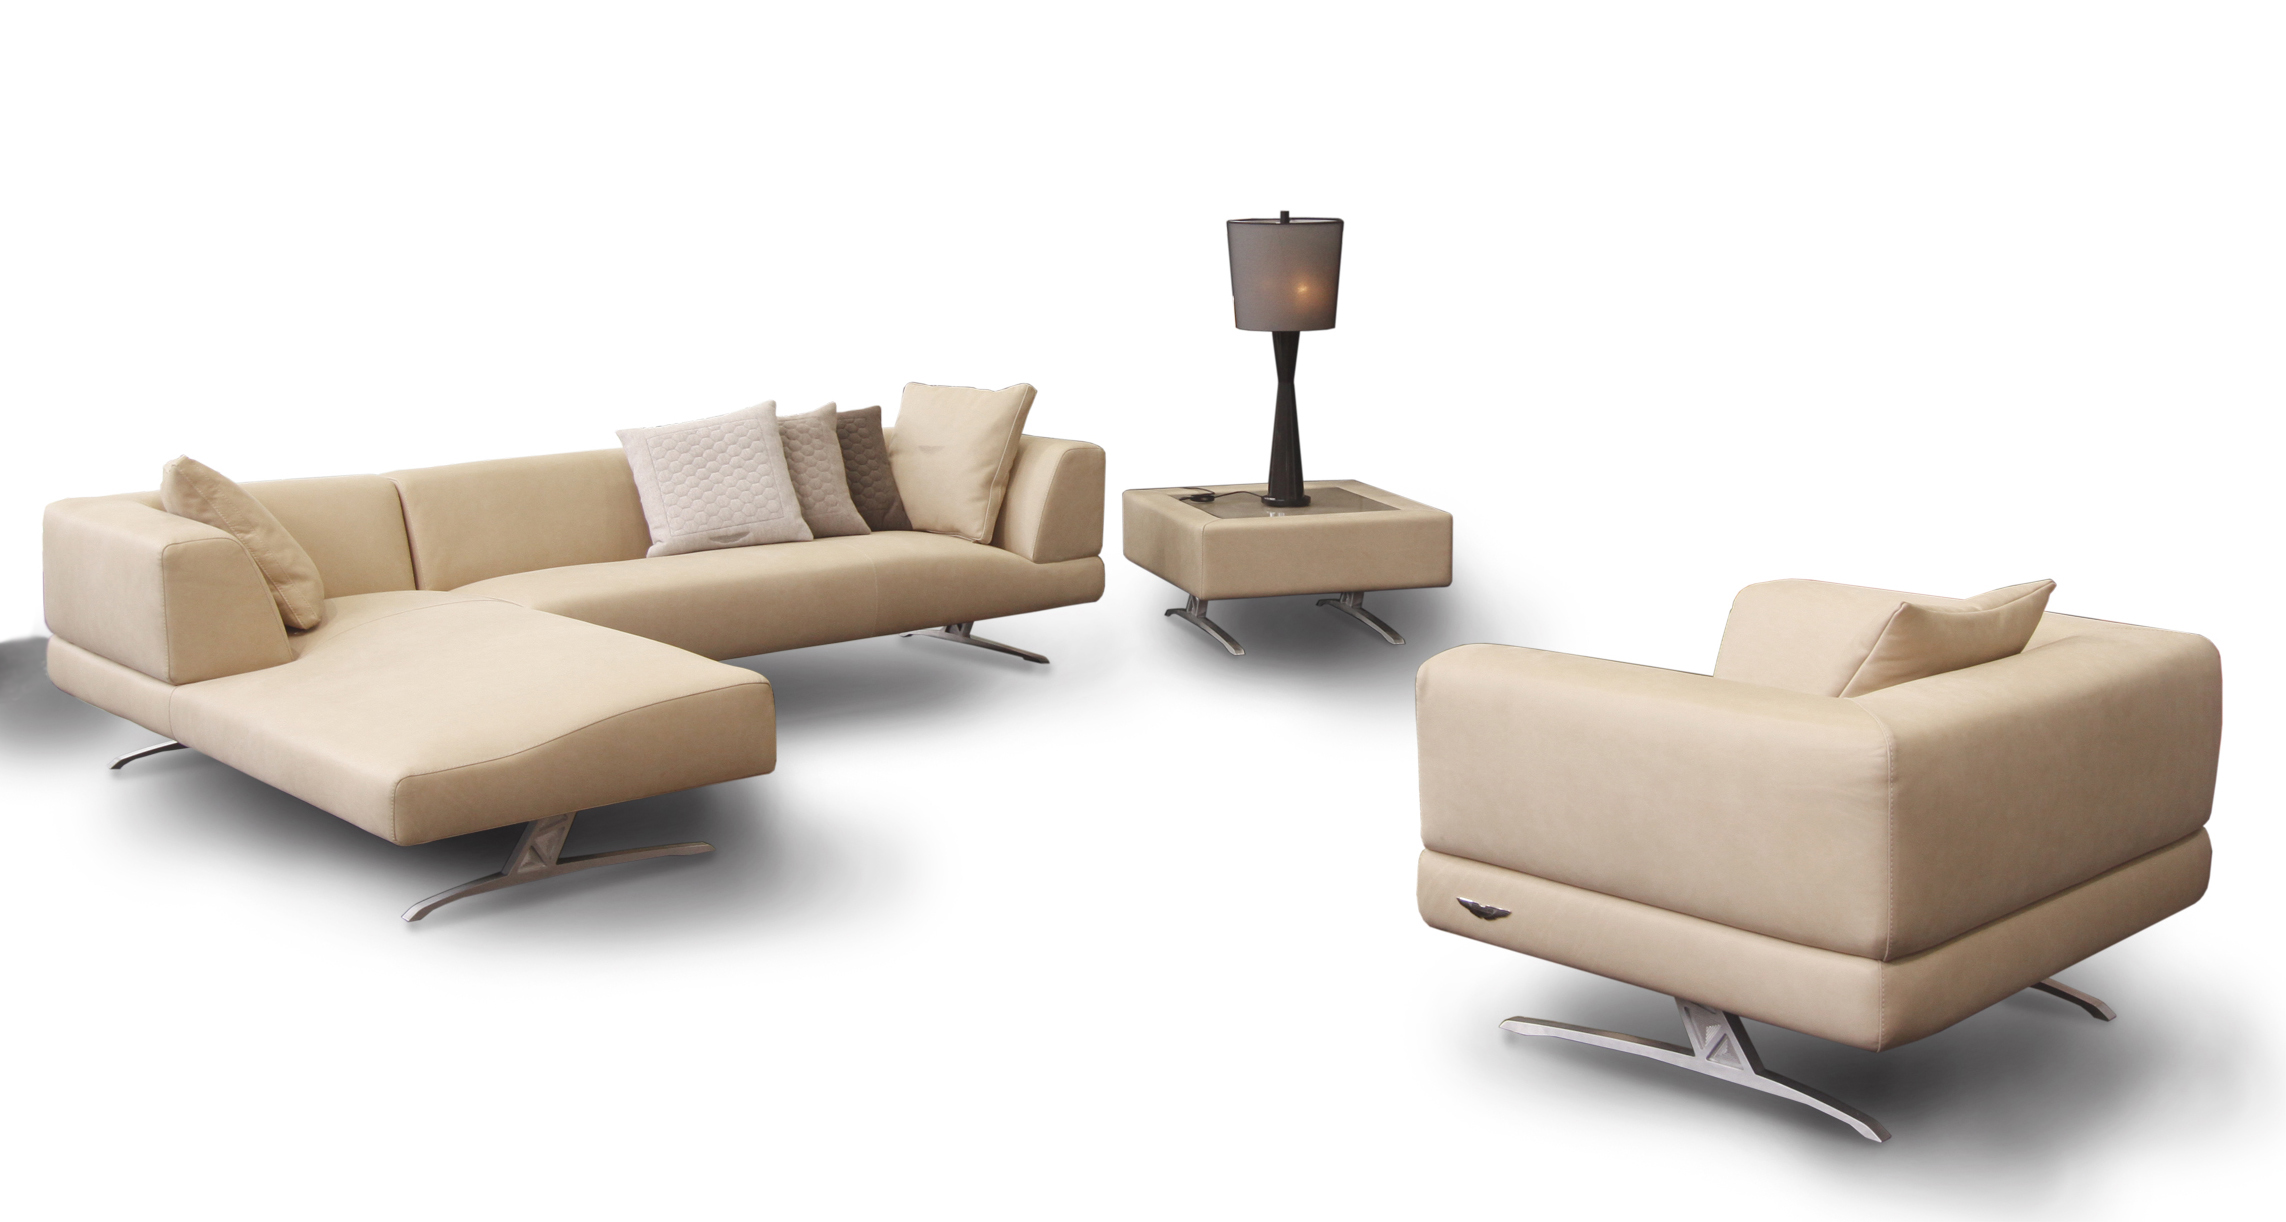 2013 Aston Martin Interiors Collection S Sofa And Bed Sport The Iconic Wings Logo Luxurylaunches